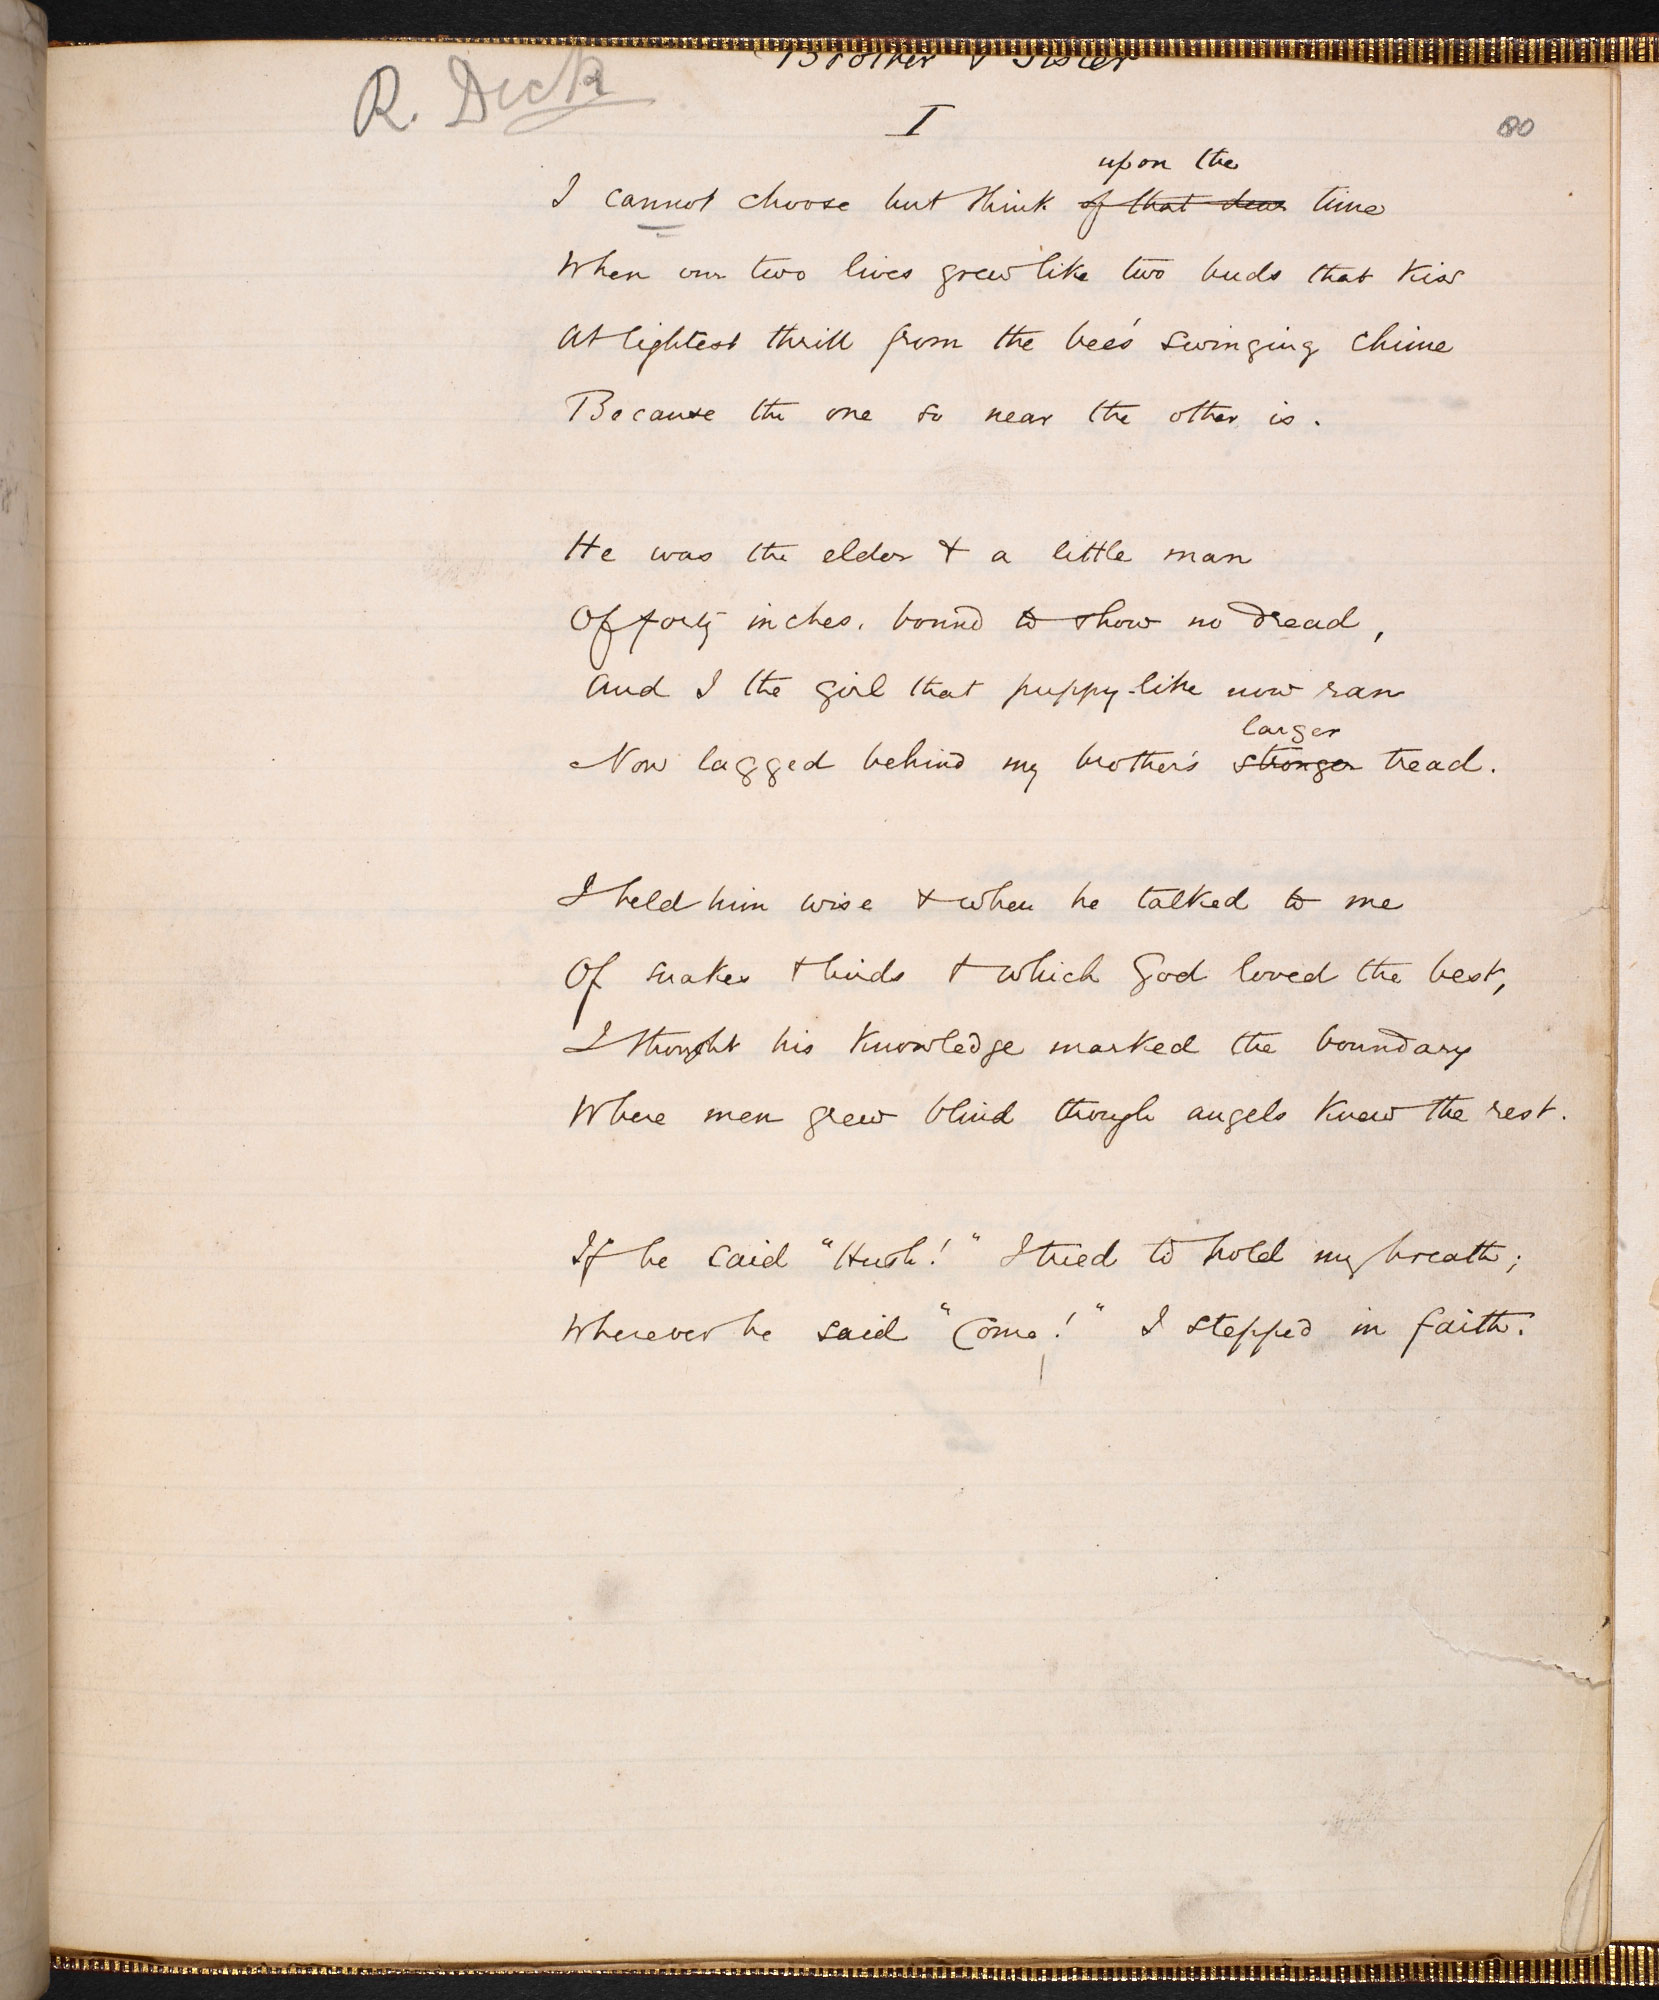 Brother and Sister: sonnet sequence by George Eliot